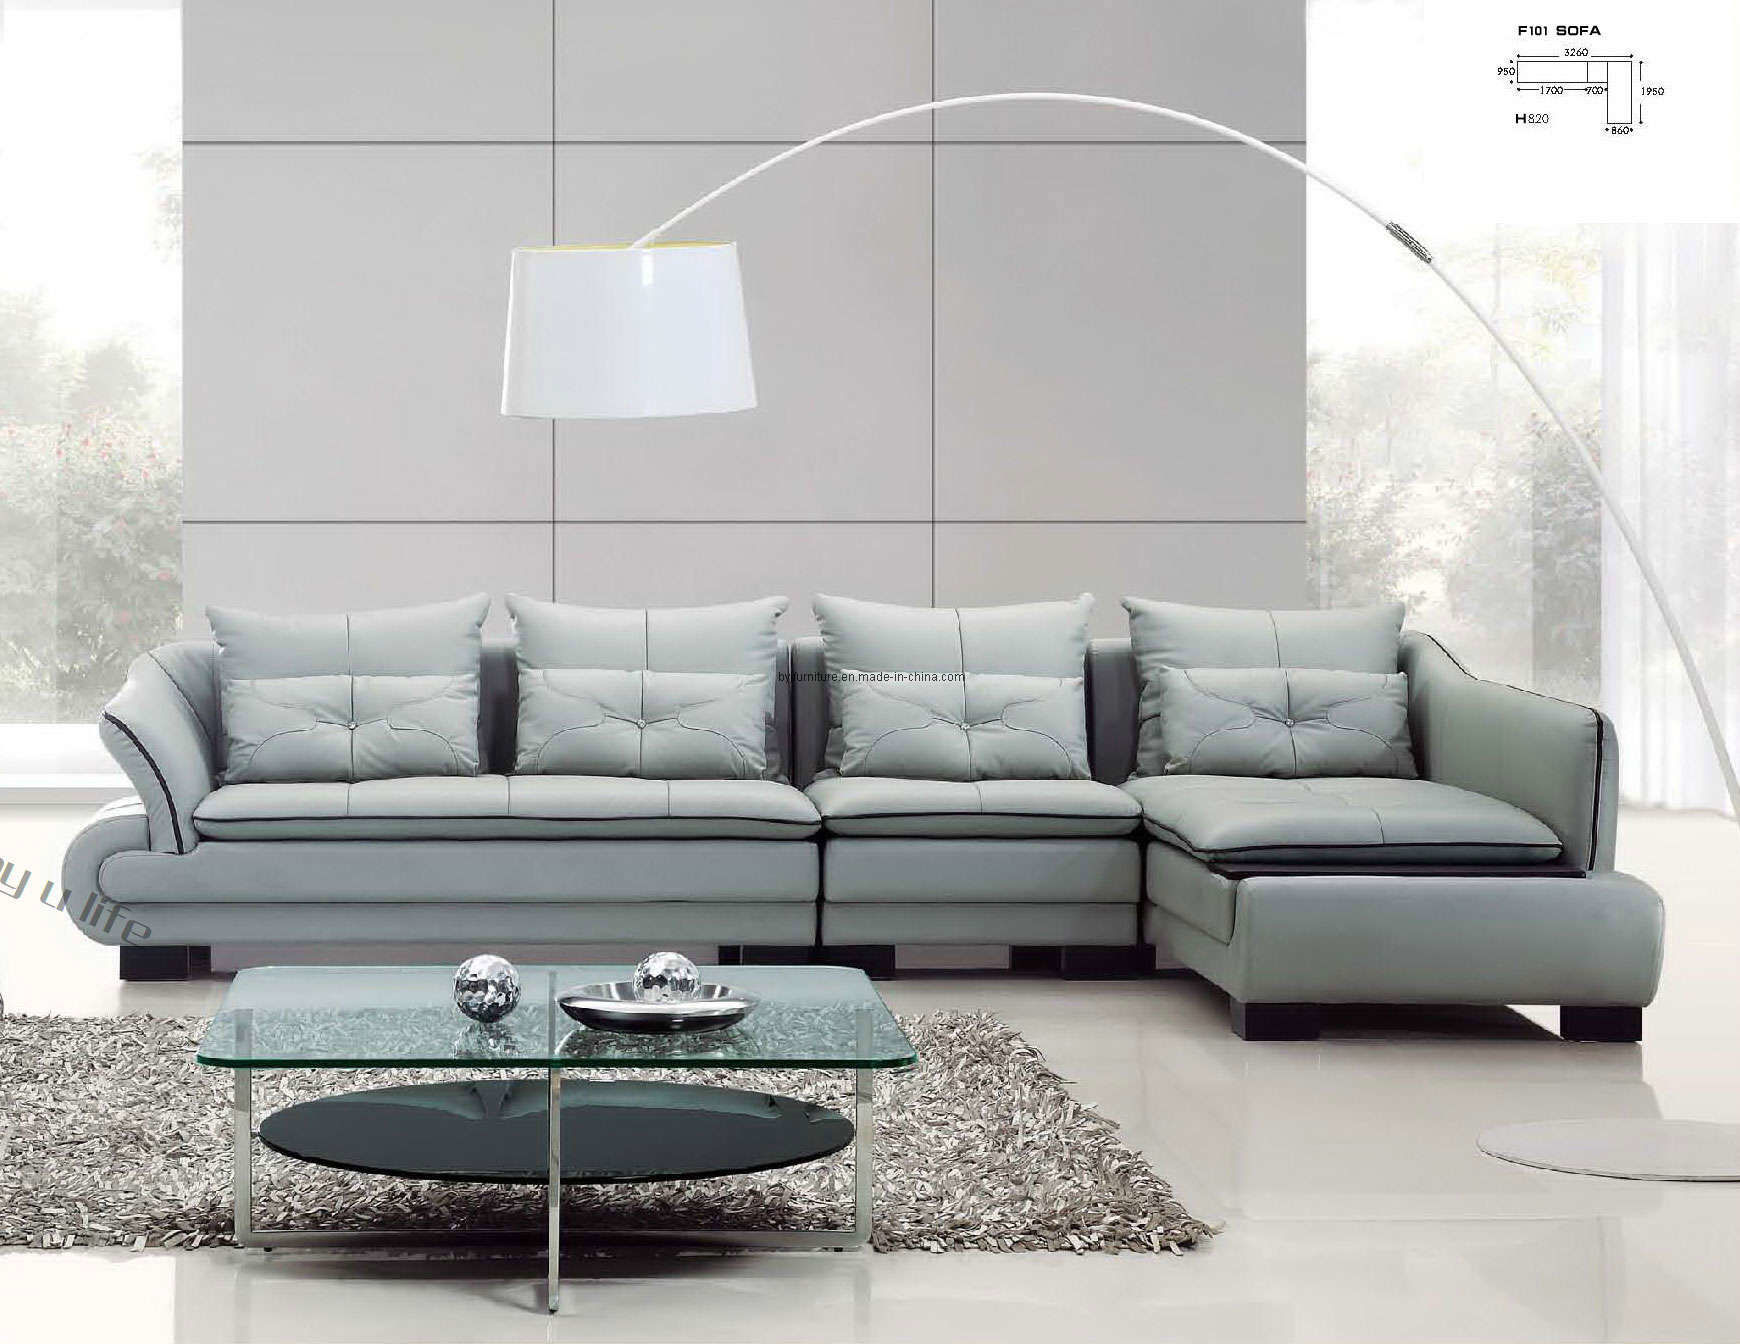 fascinating cheap sectional sofas for sale gallery-Modern Cheap Sectional sofas for Sale Gallery